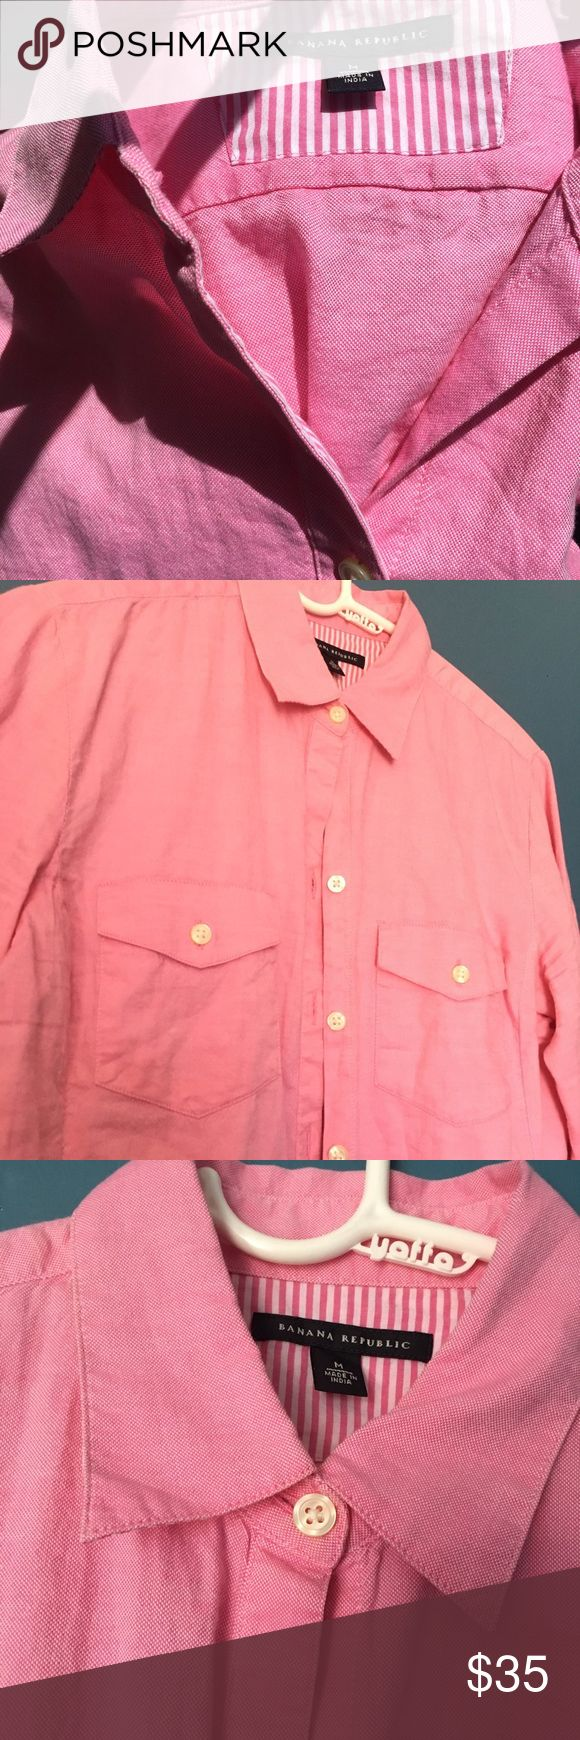 Pink Women's Banana Republic Oxford Sz M Only worn once! BR women's oxford with trouble front pockets - Sweet striped details on the inside of the placket and the cuffs 💓 Banana Republic Tops Button Down Shirts